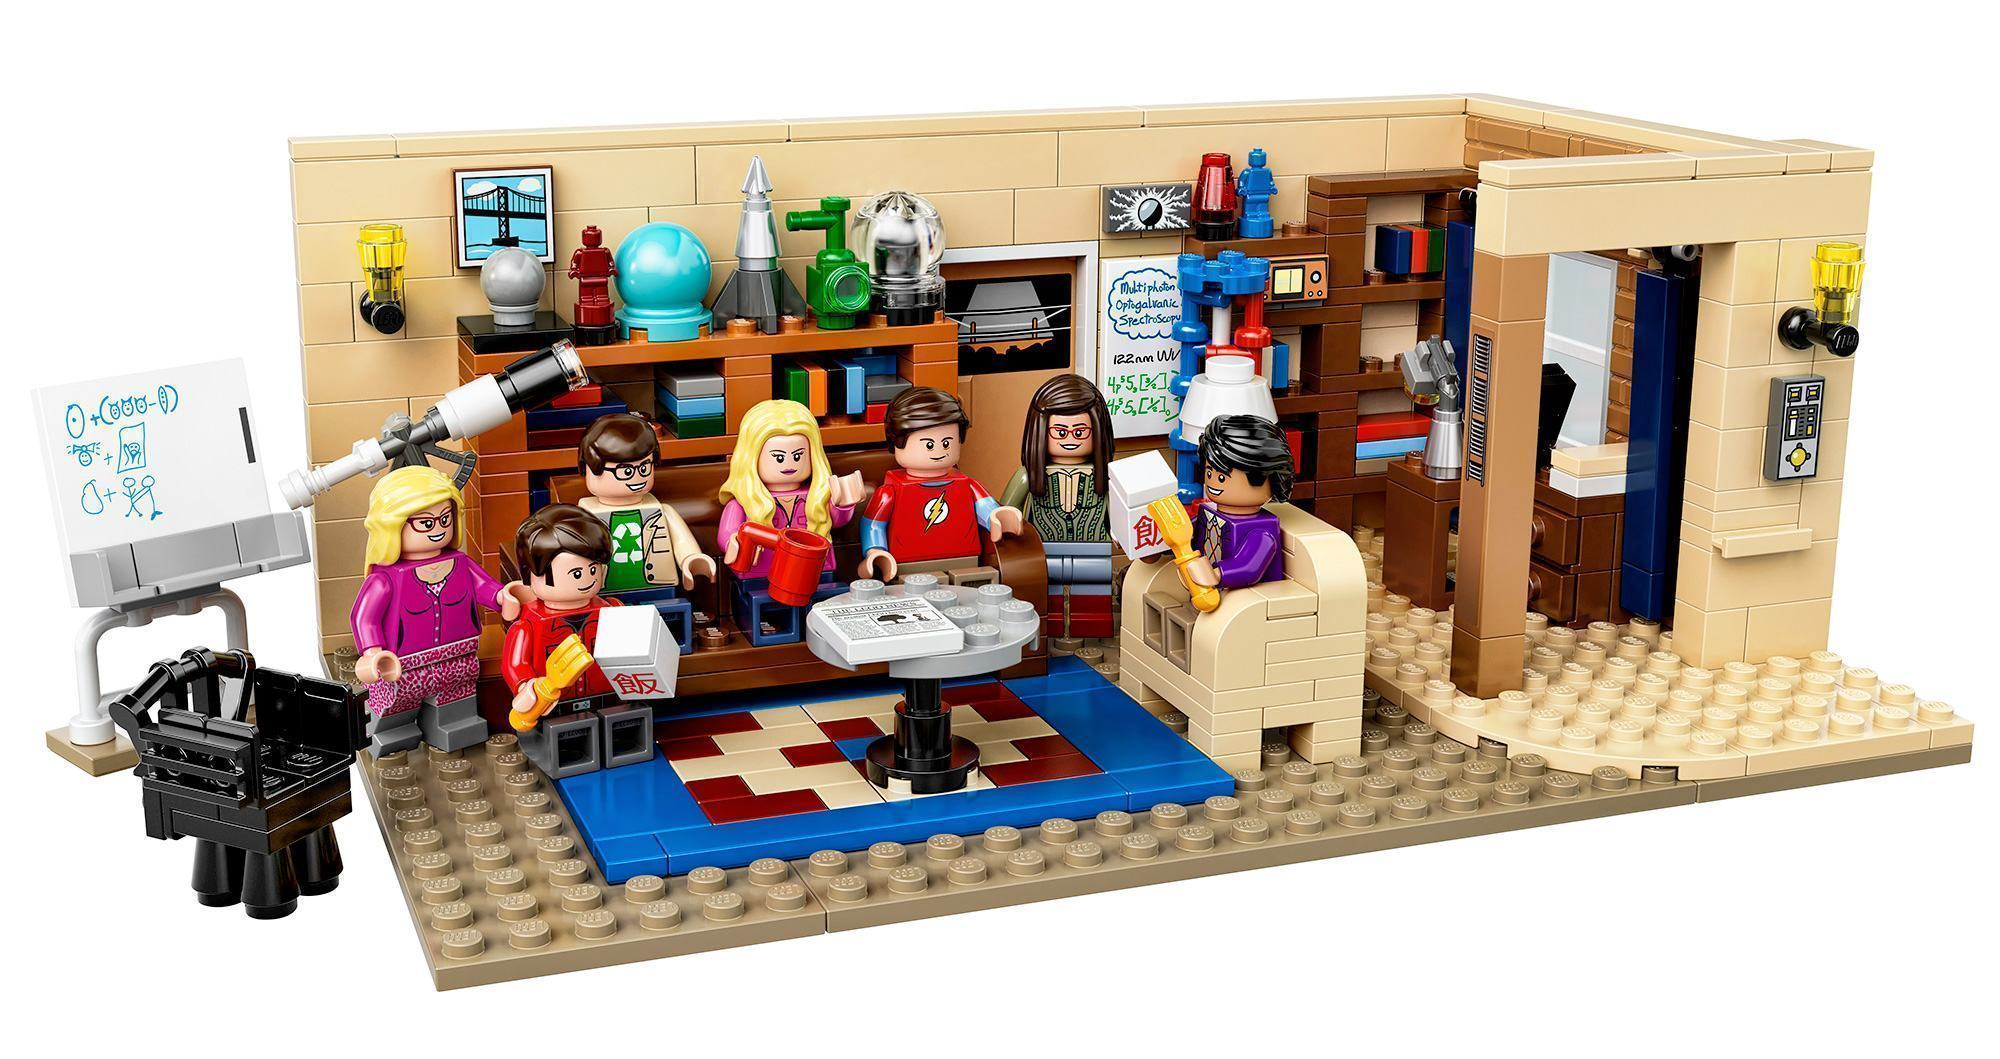 LEGO-21302-The-Big-Bang-Theory-07